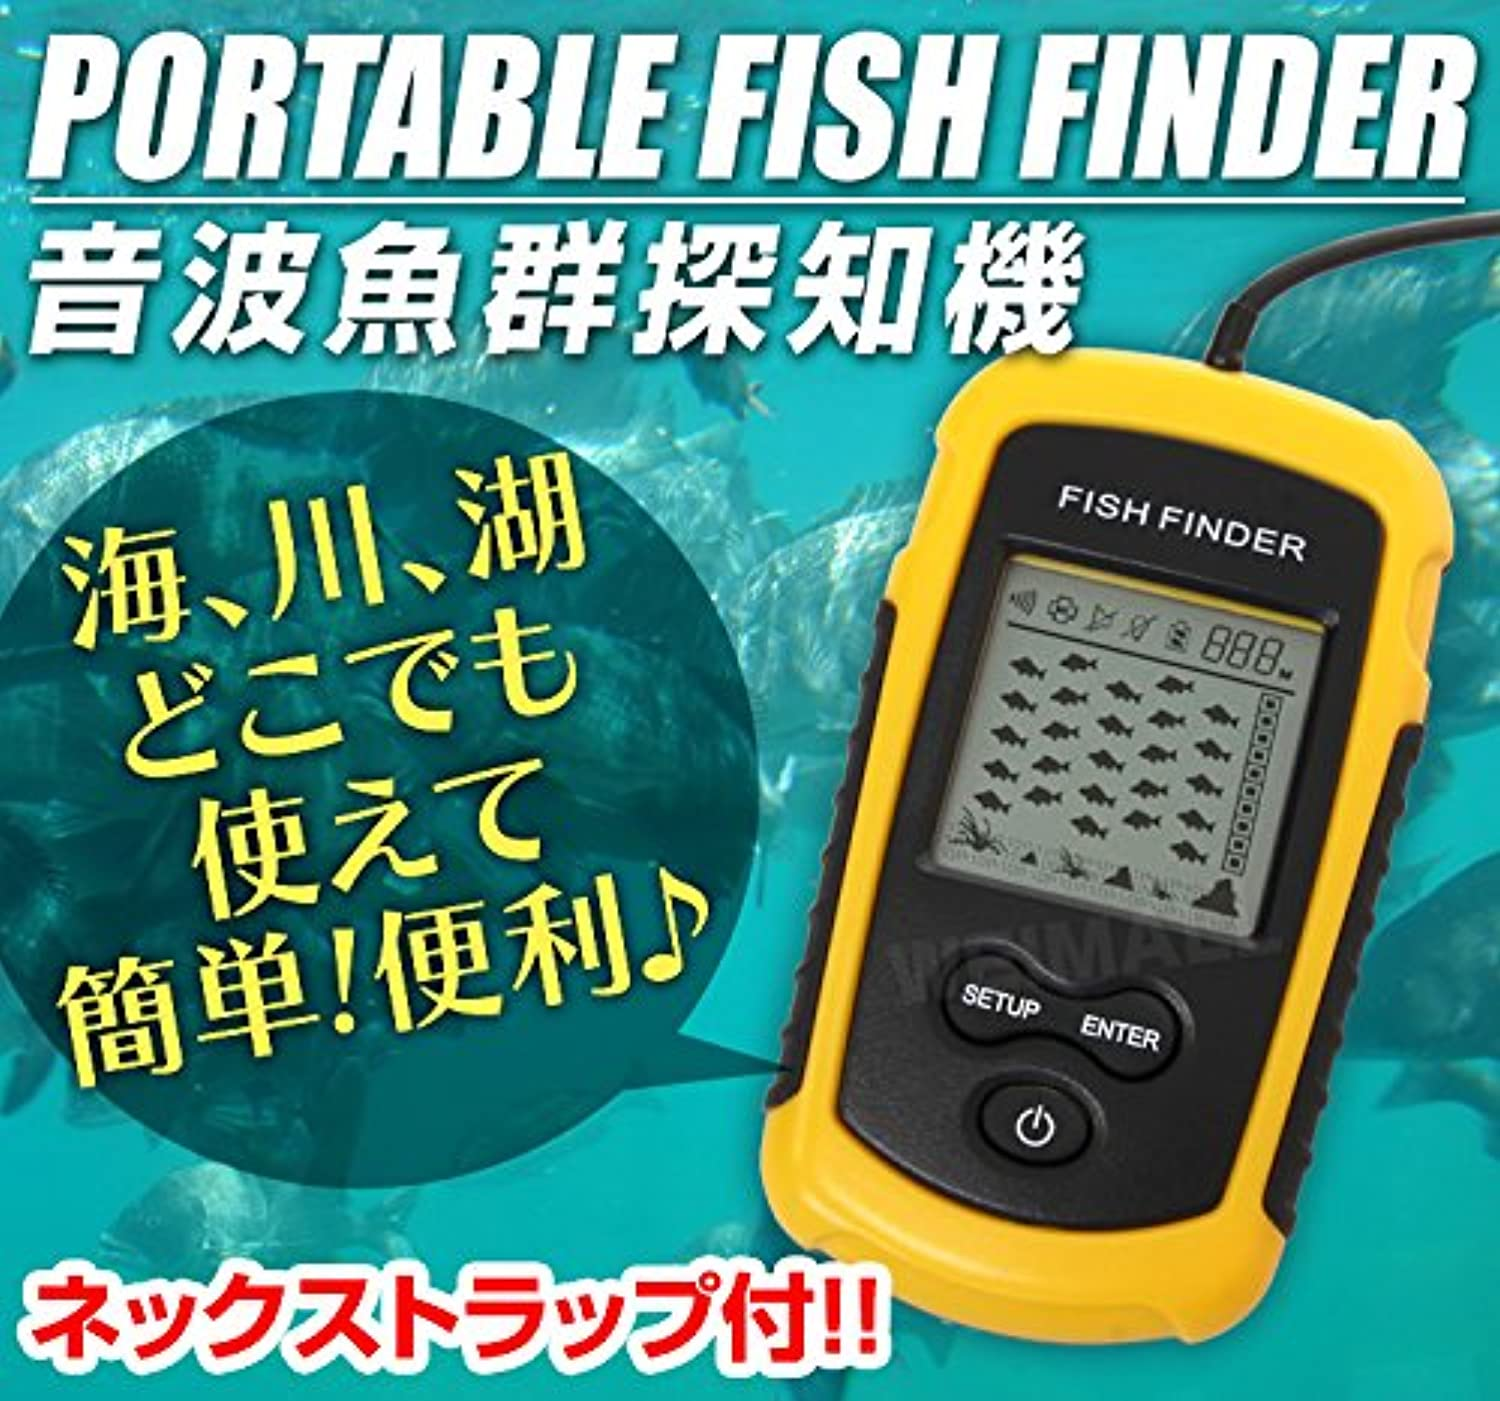 Lightweight small fish finder ultrasonic Solar measurement portable portable fish finder backlight with sea, river, Japanese manual with that can fish detection and depth measurement in a wide range, such as lake